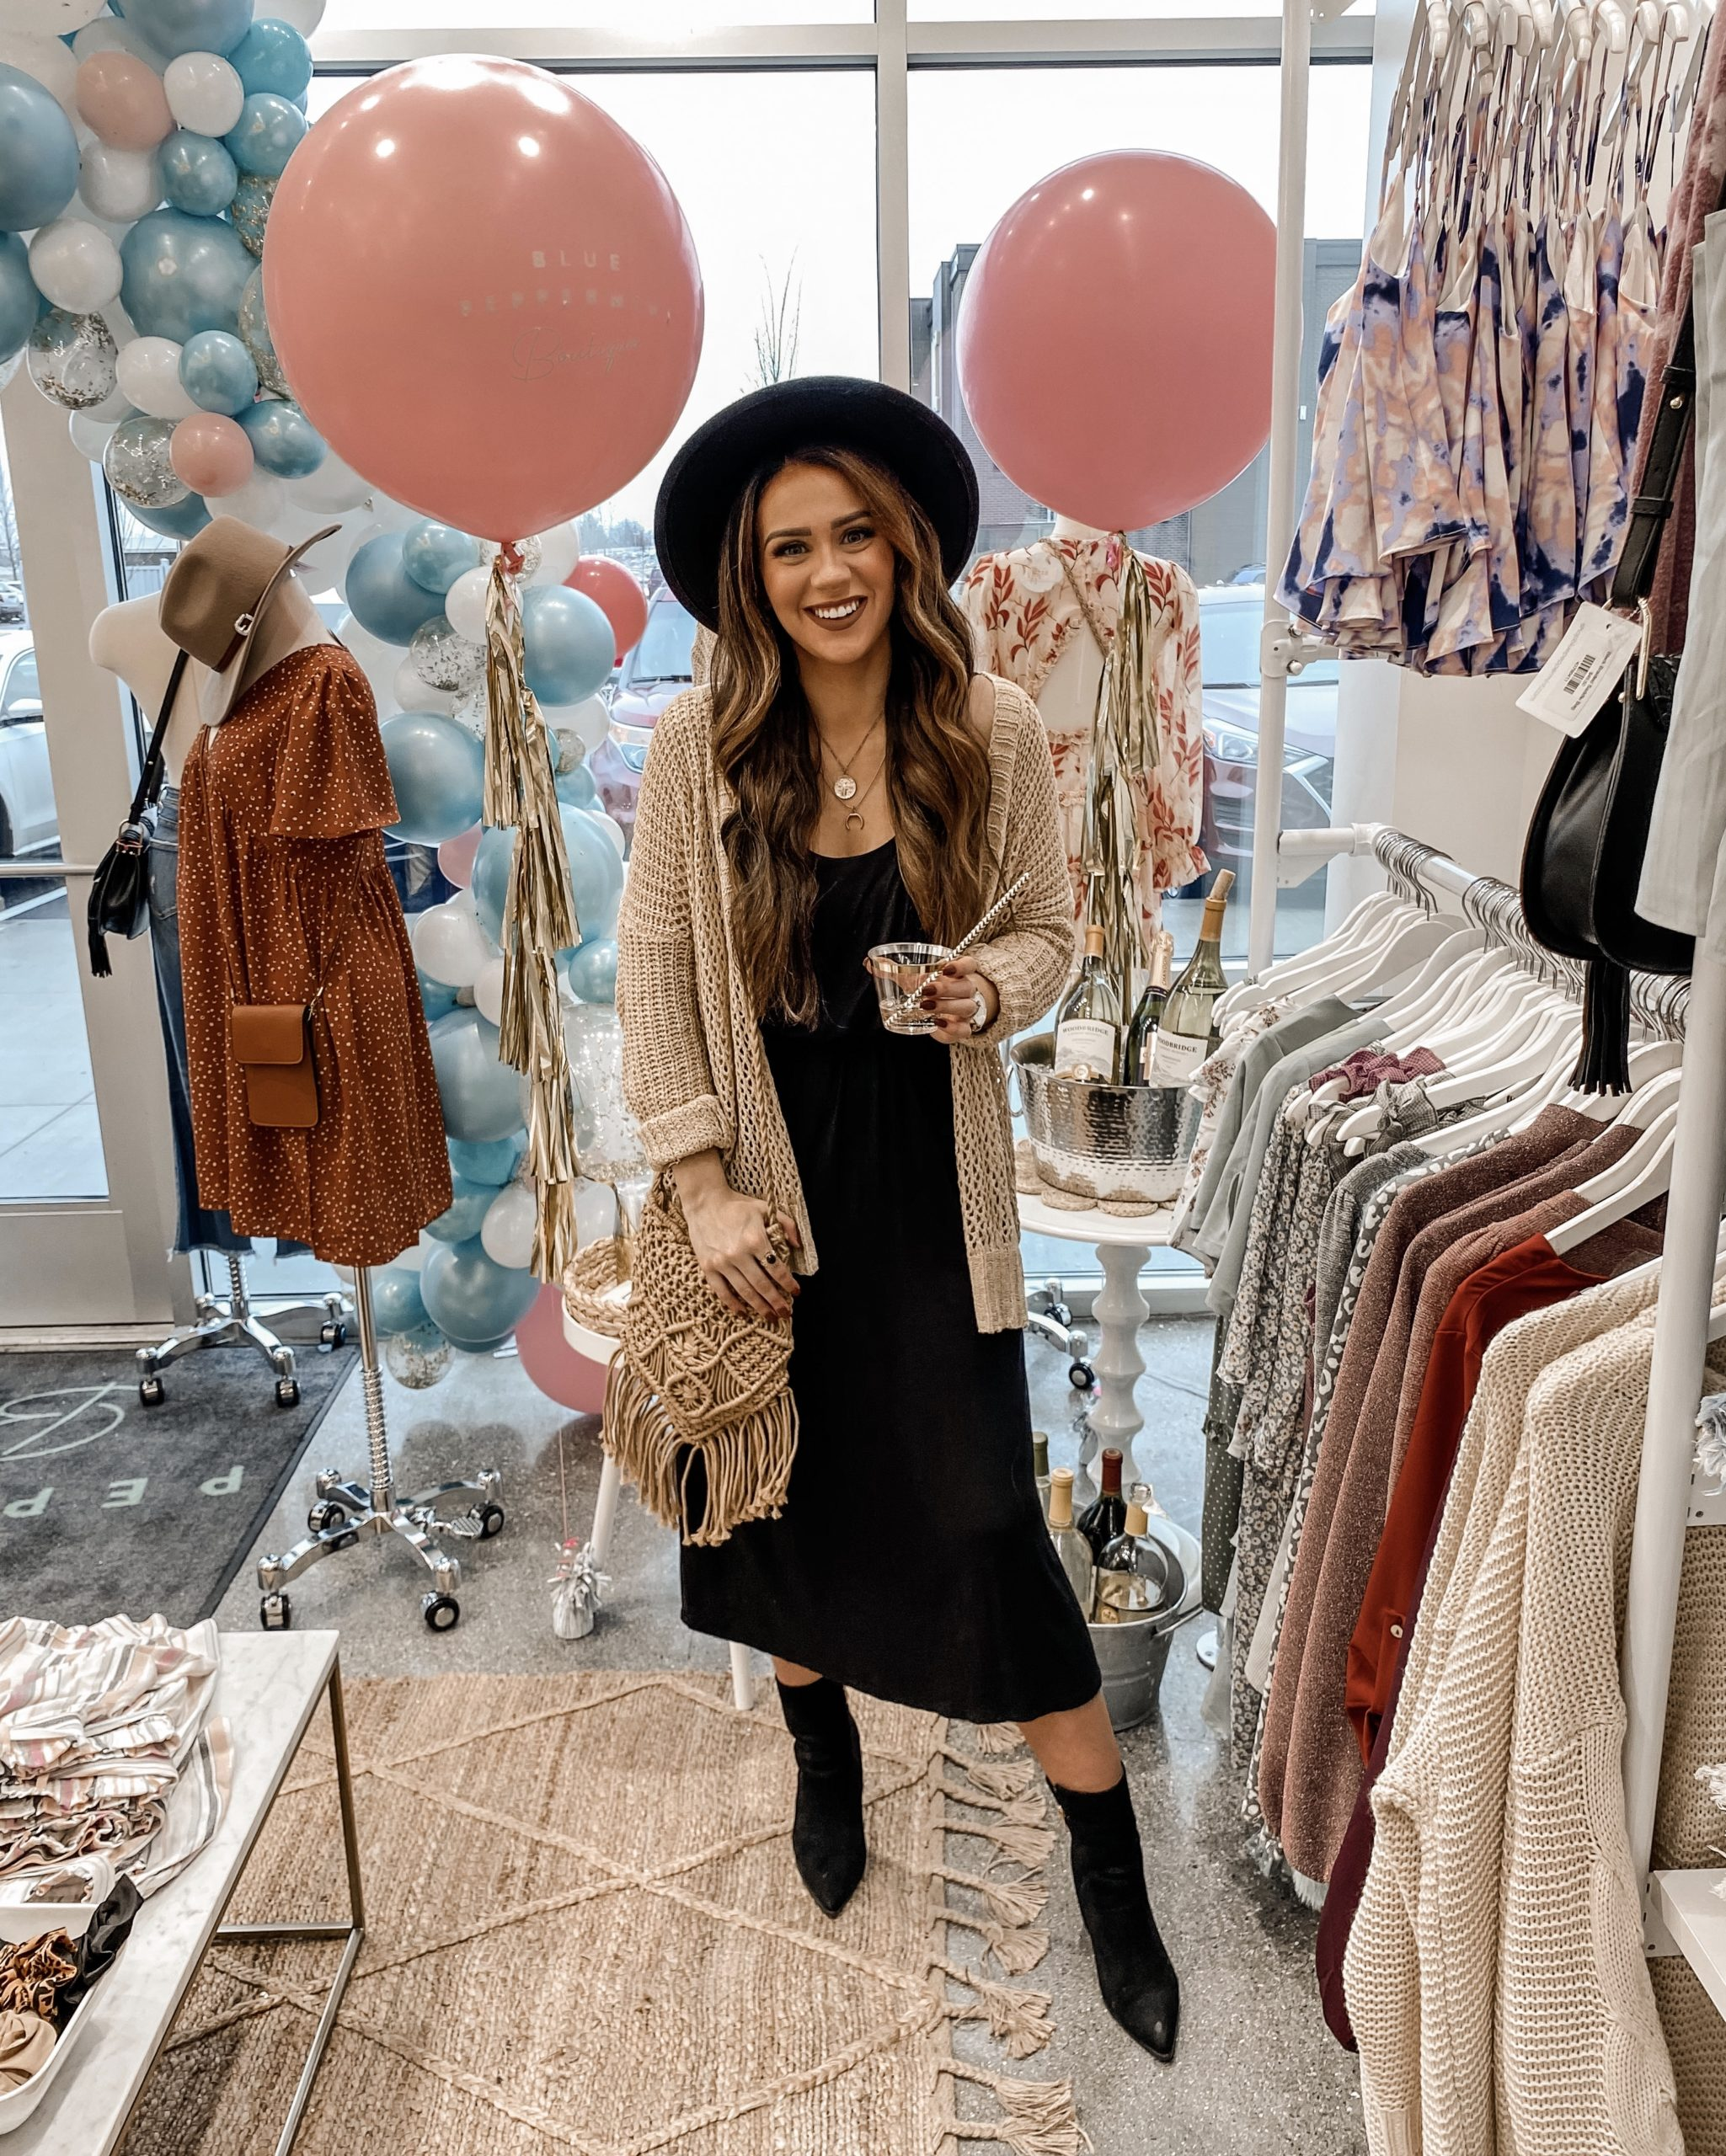 a woman smiling standing inside of a store